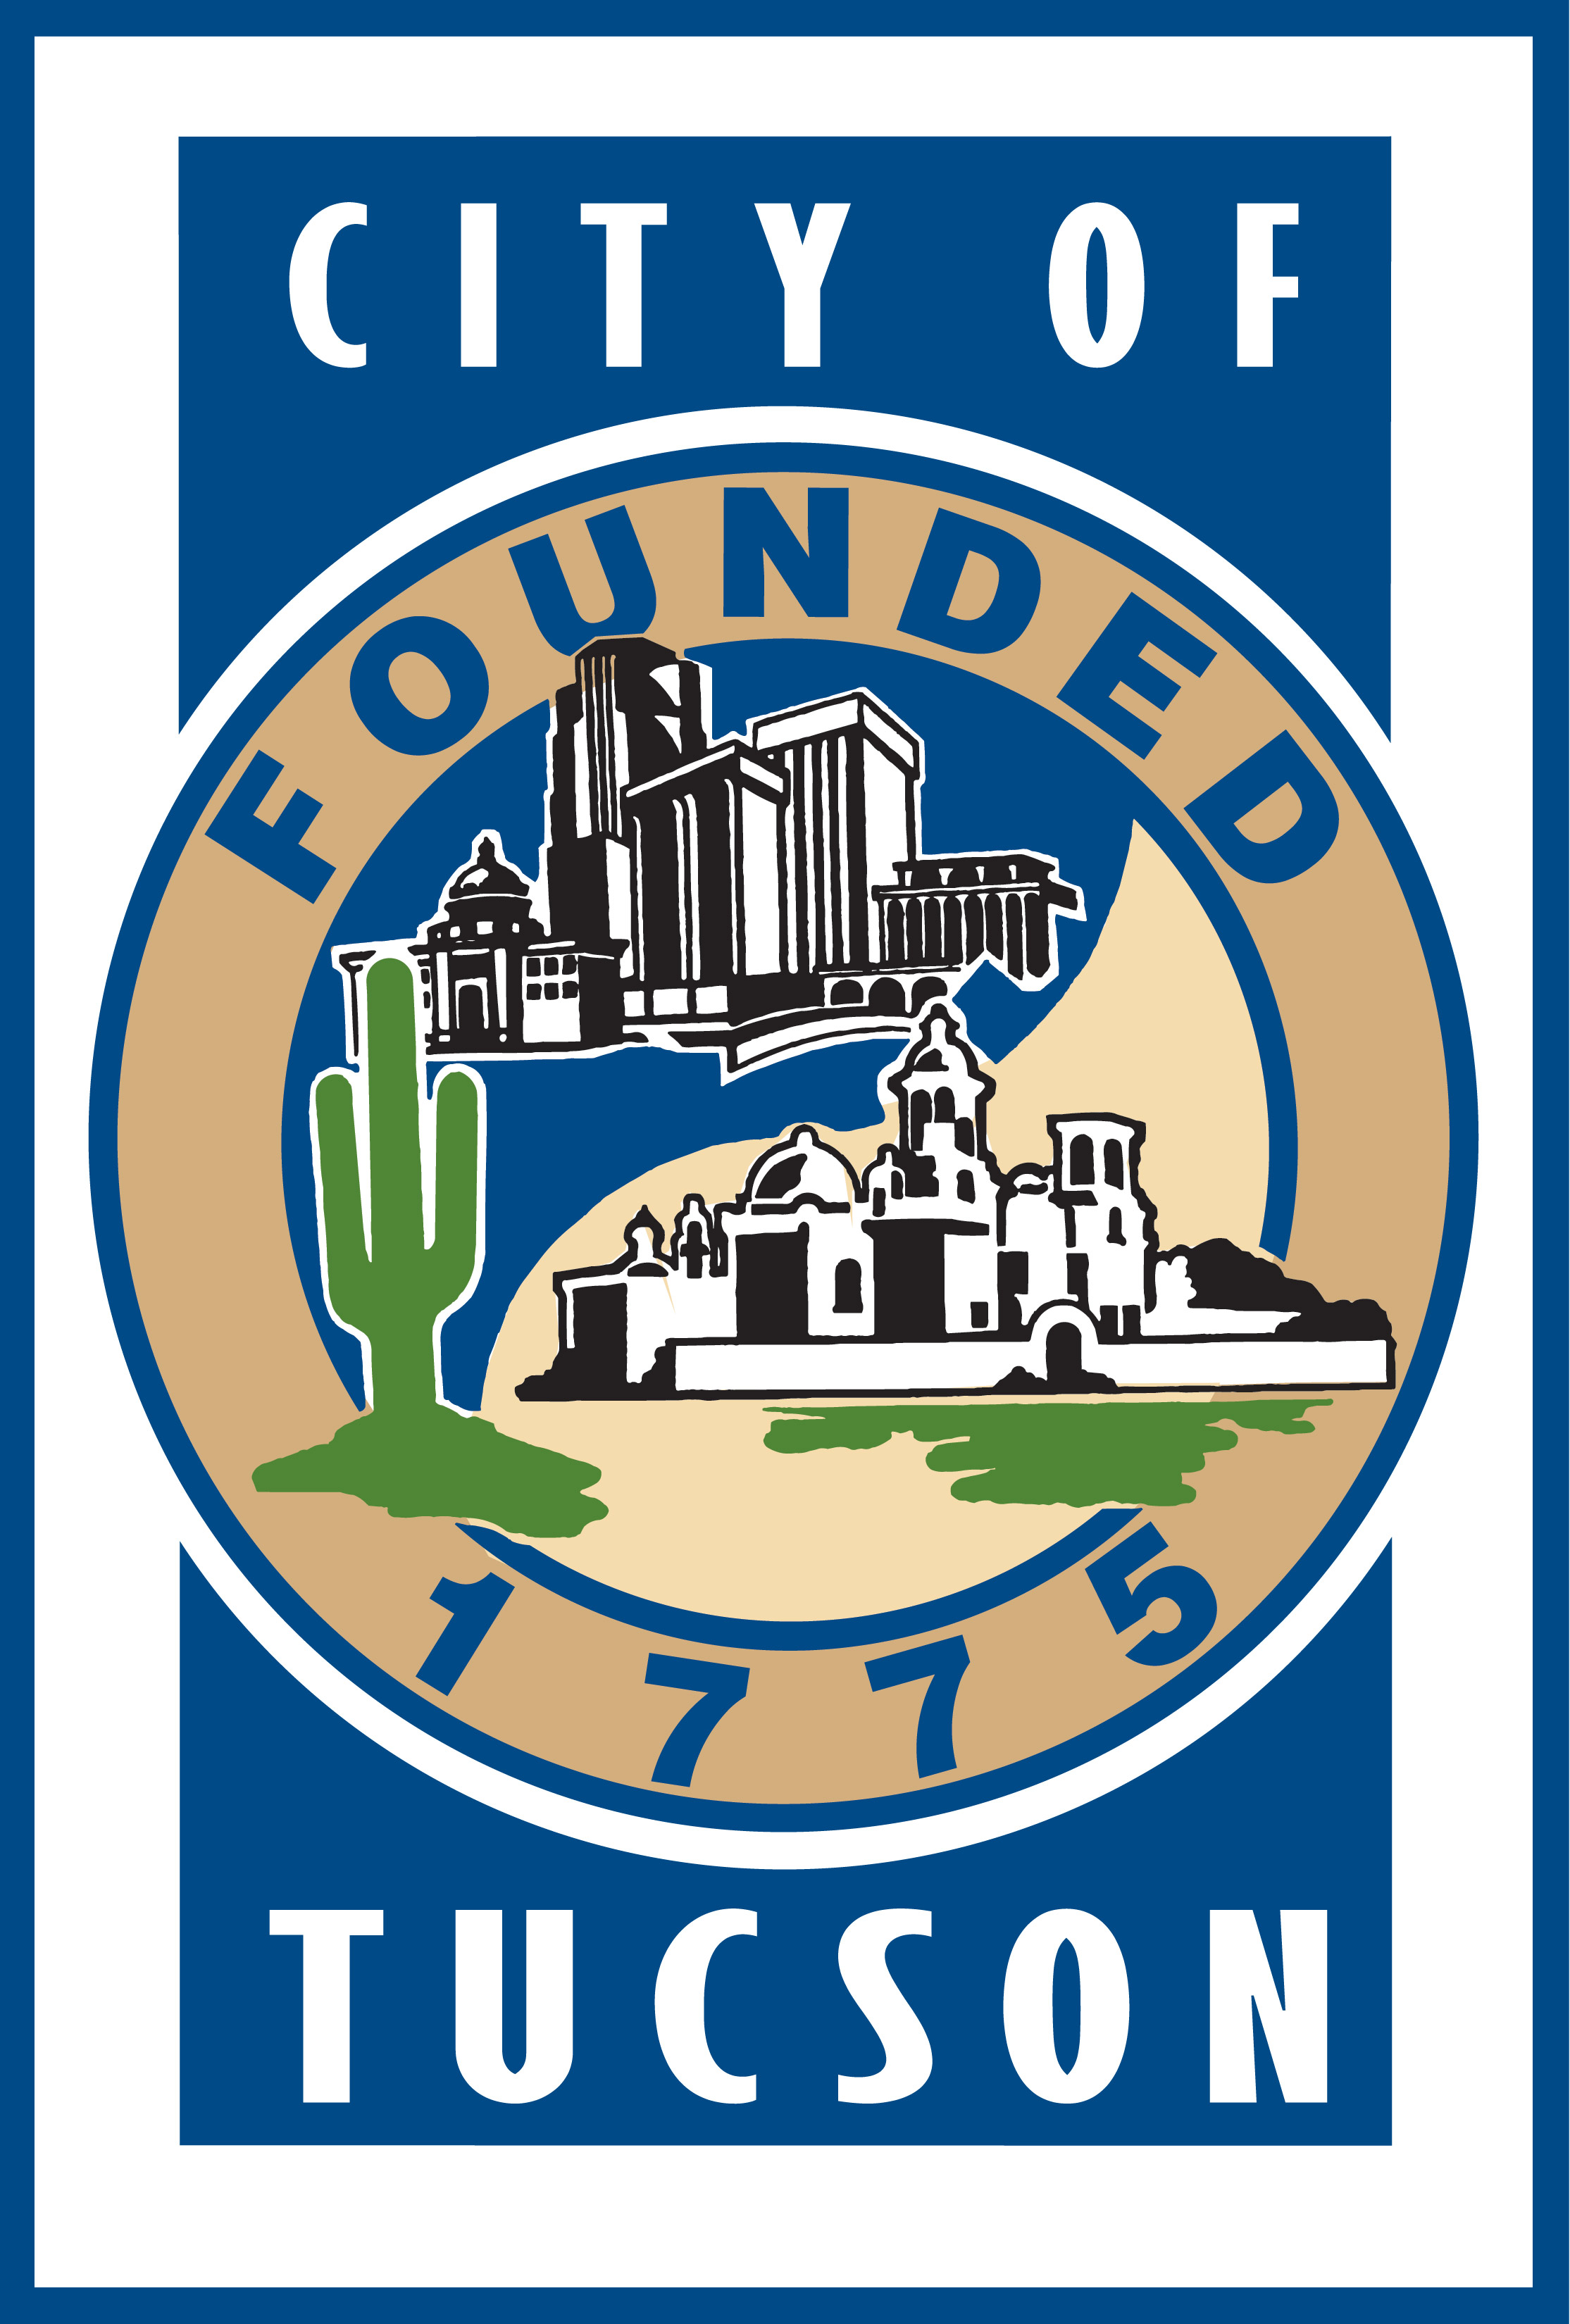 City of Tucson.jpg